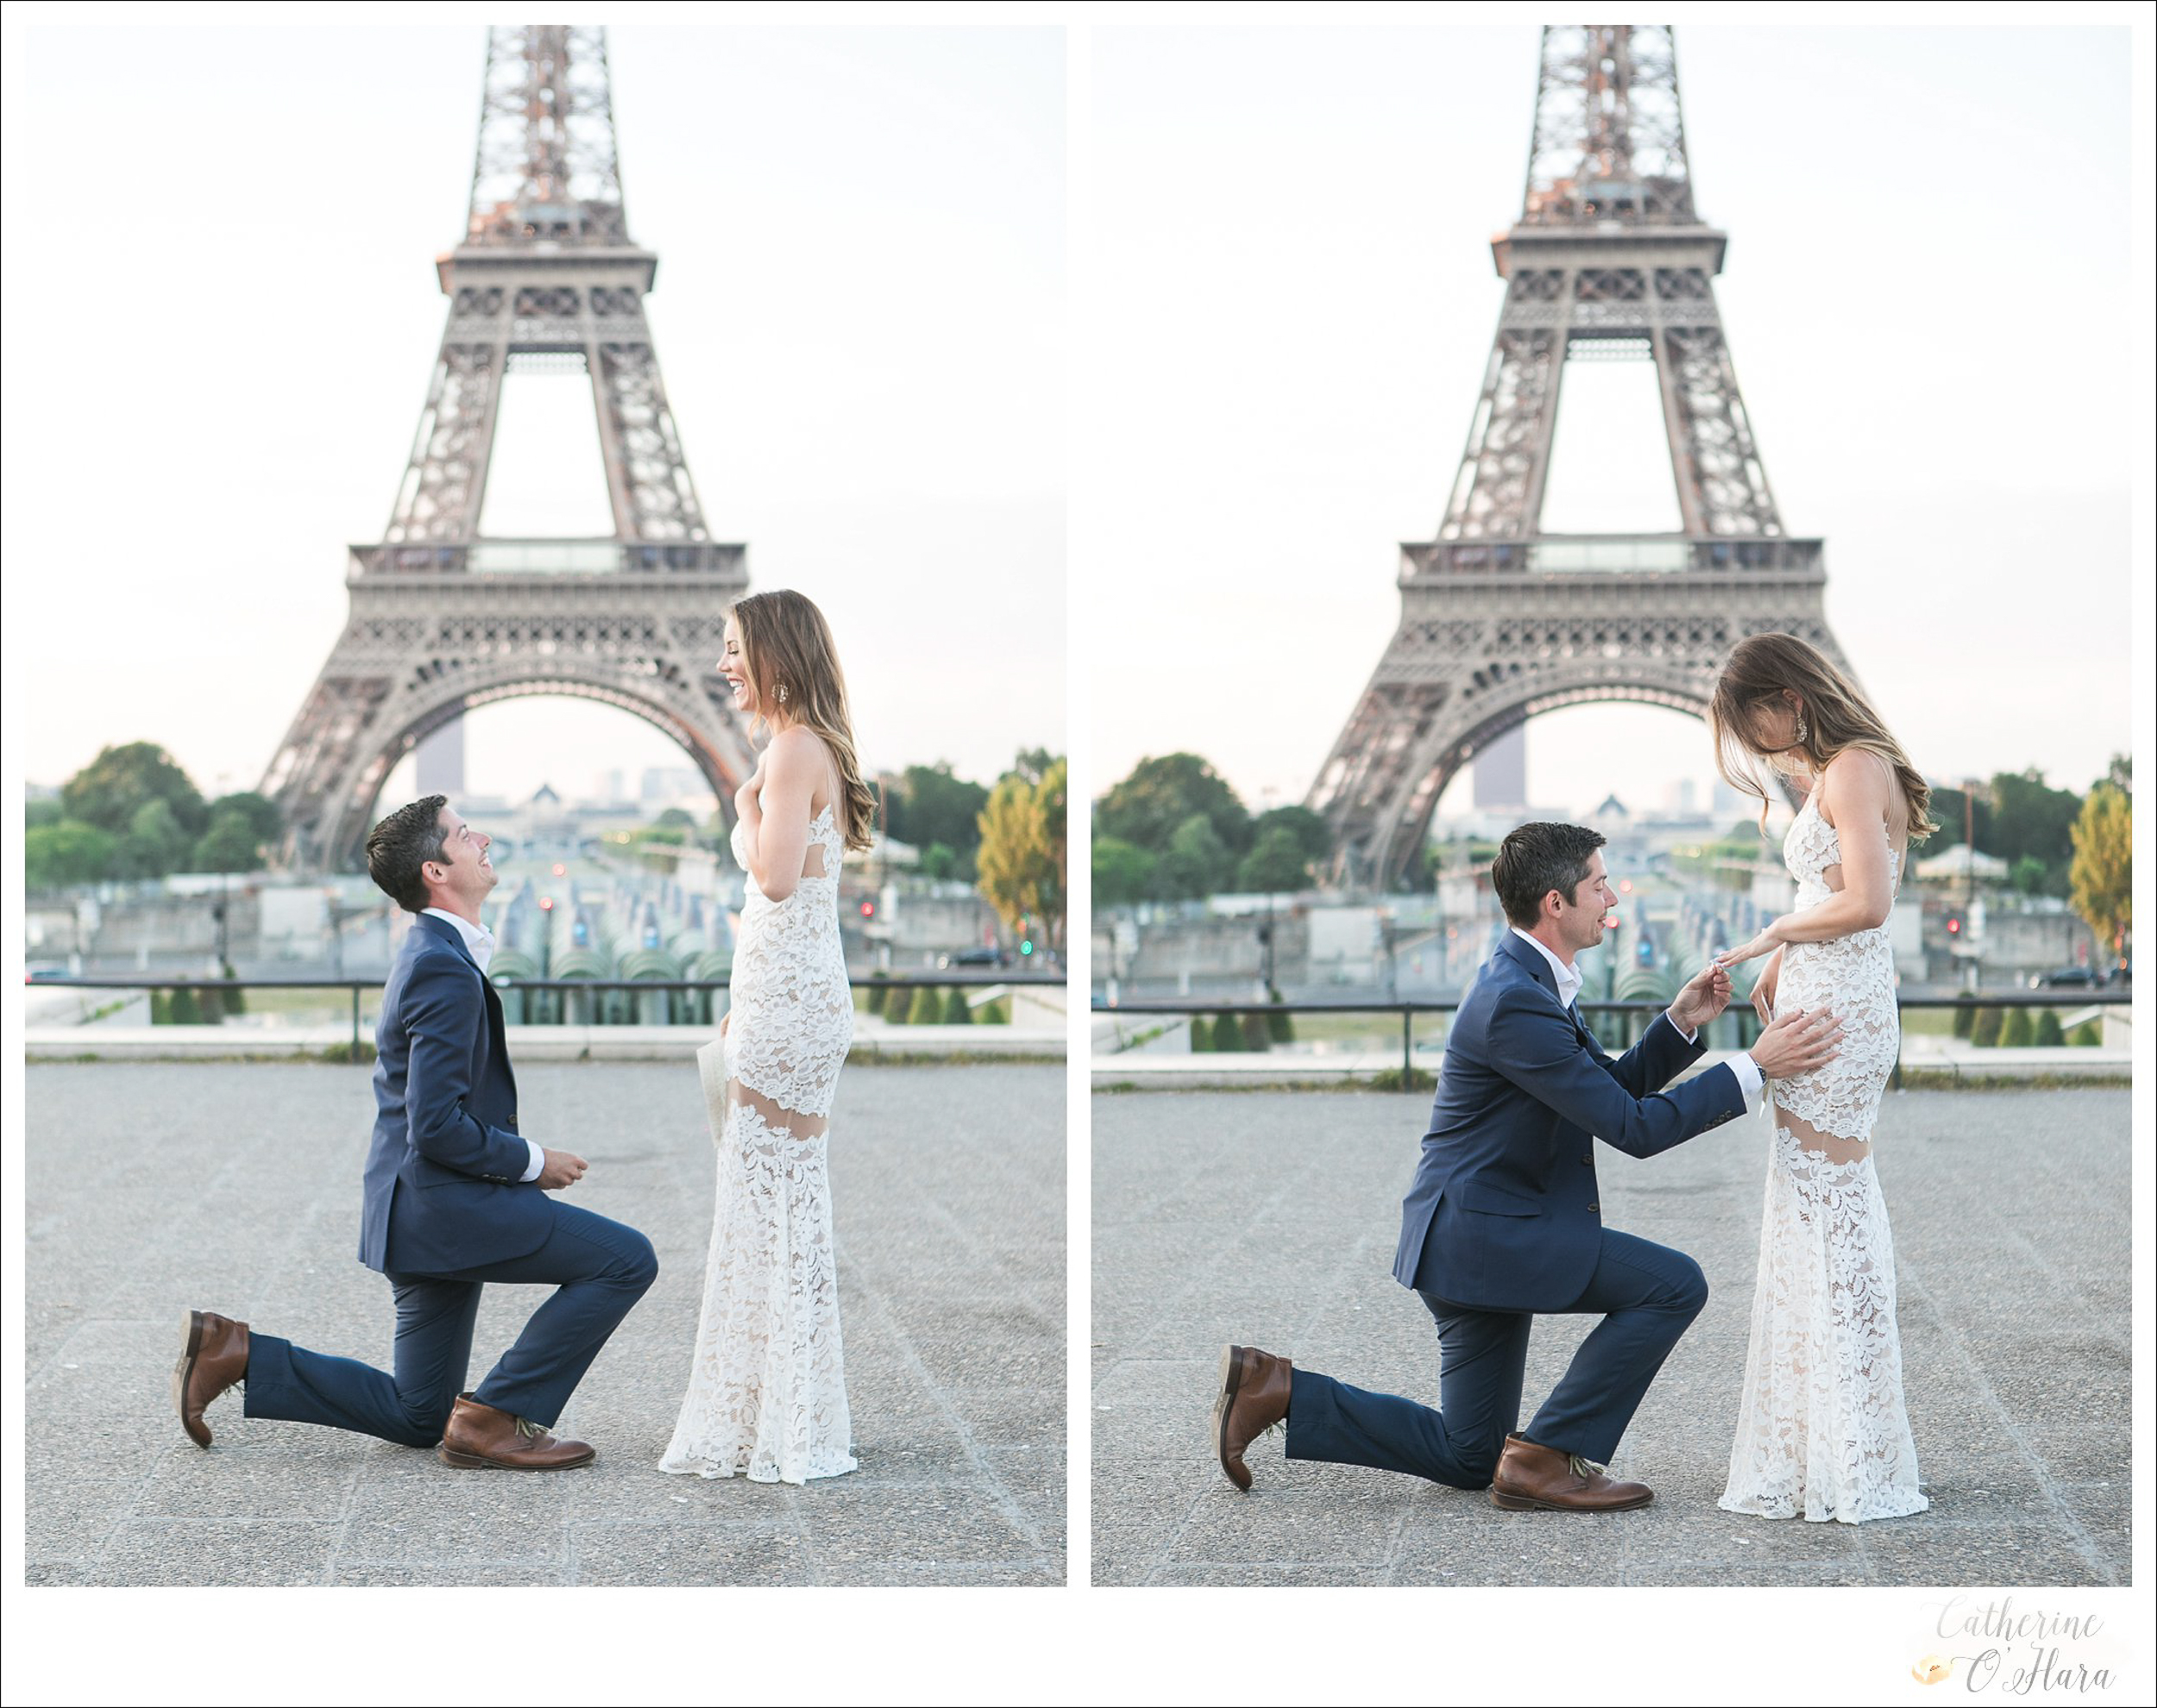 paris france engagement proposal photographer-04.jpg